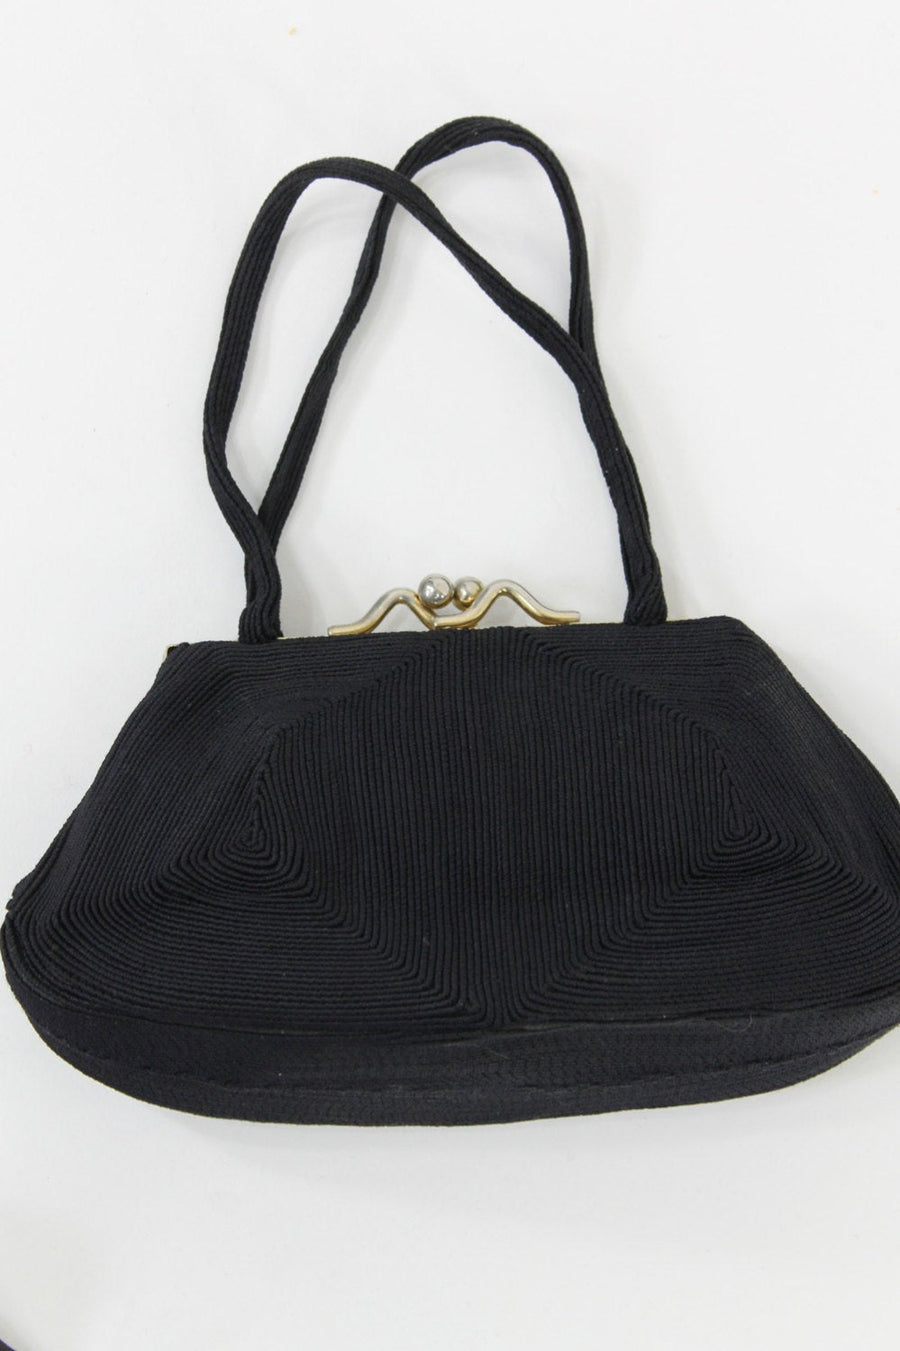 1940s frame purse | corded handbag | evening clutch